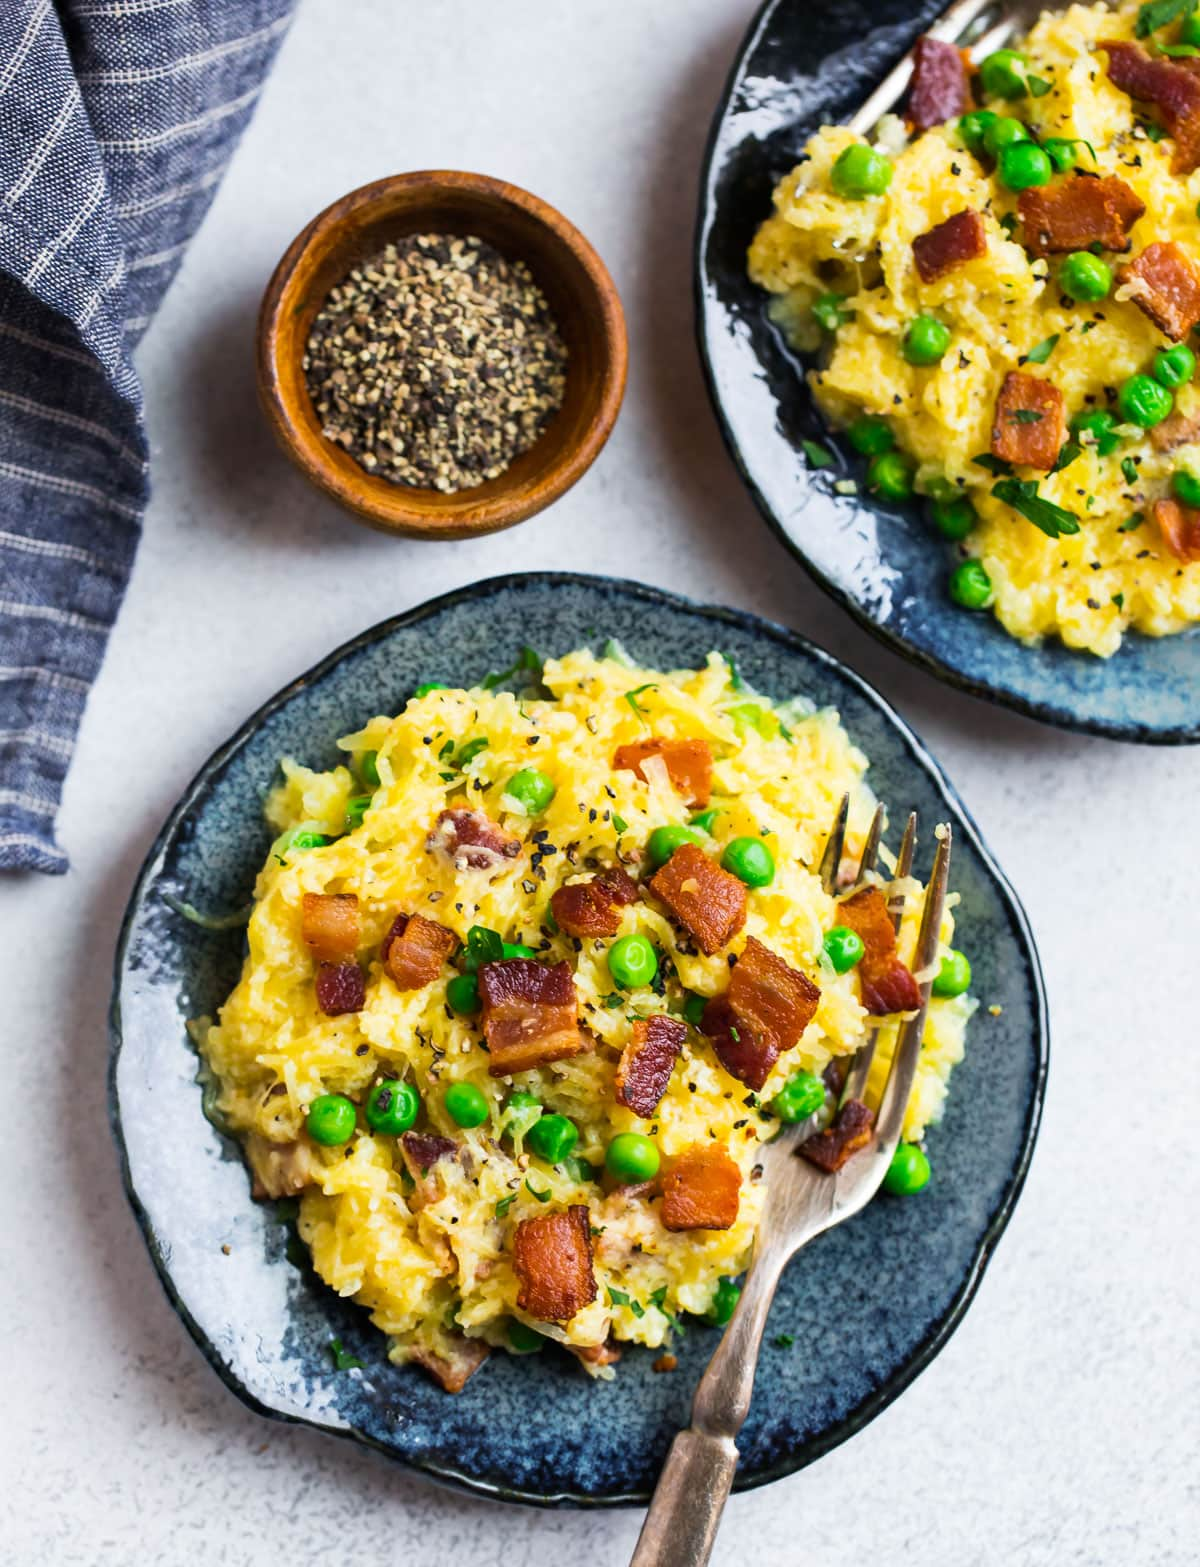 Two plates of spaghetti squash carbonara